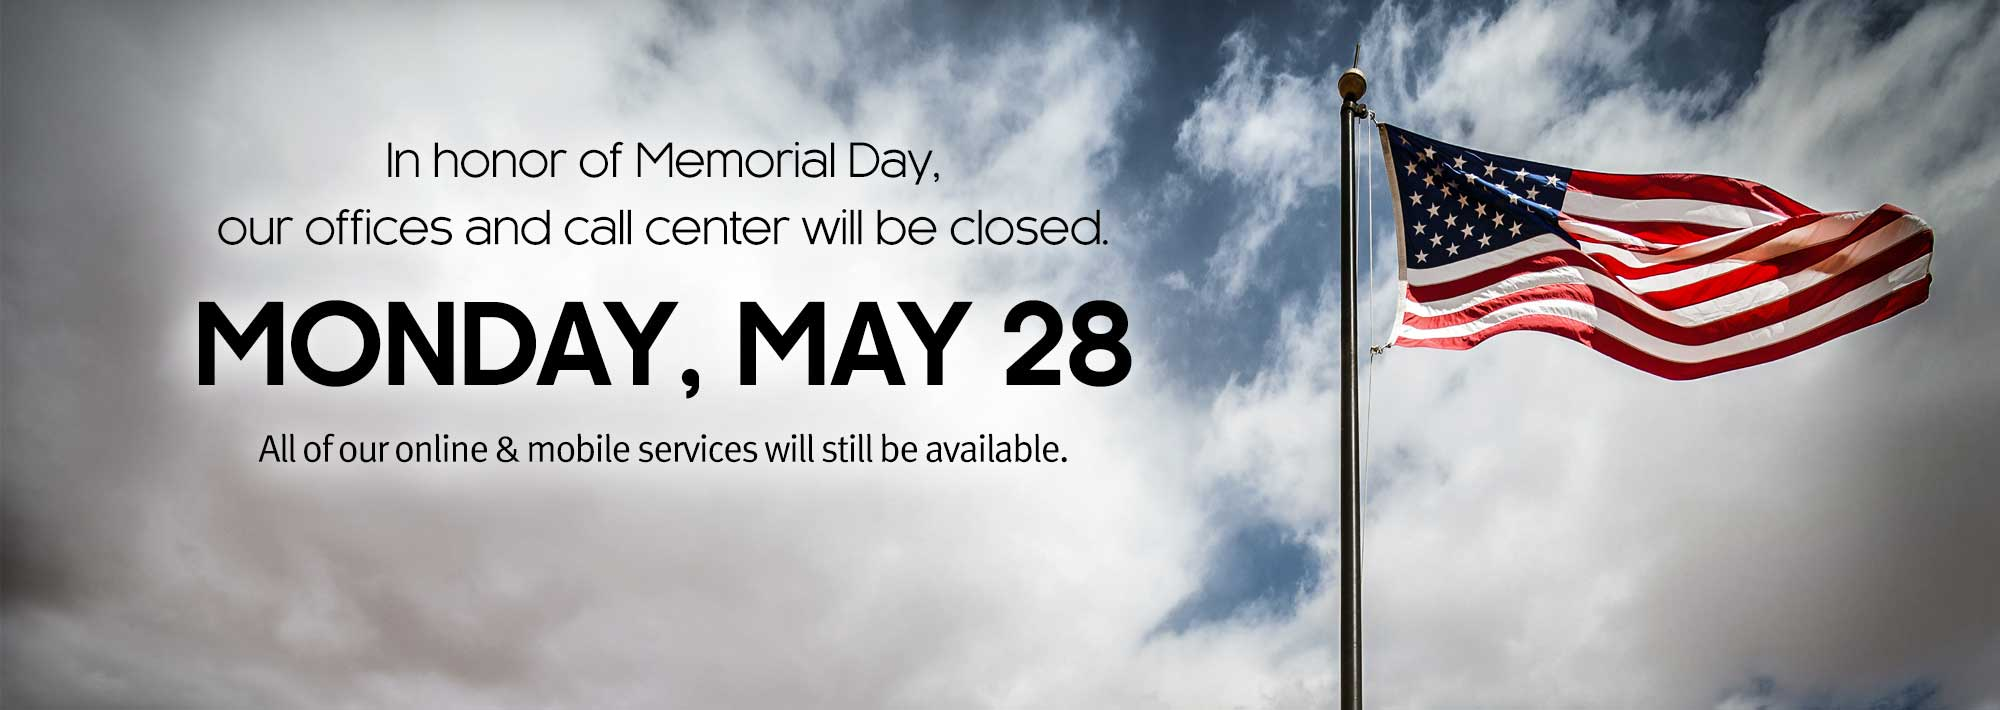 In honor of Memorial Day, our offices and call center will be closed on Monday, May 28th.